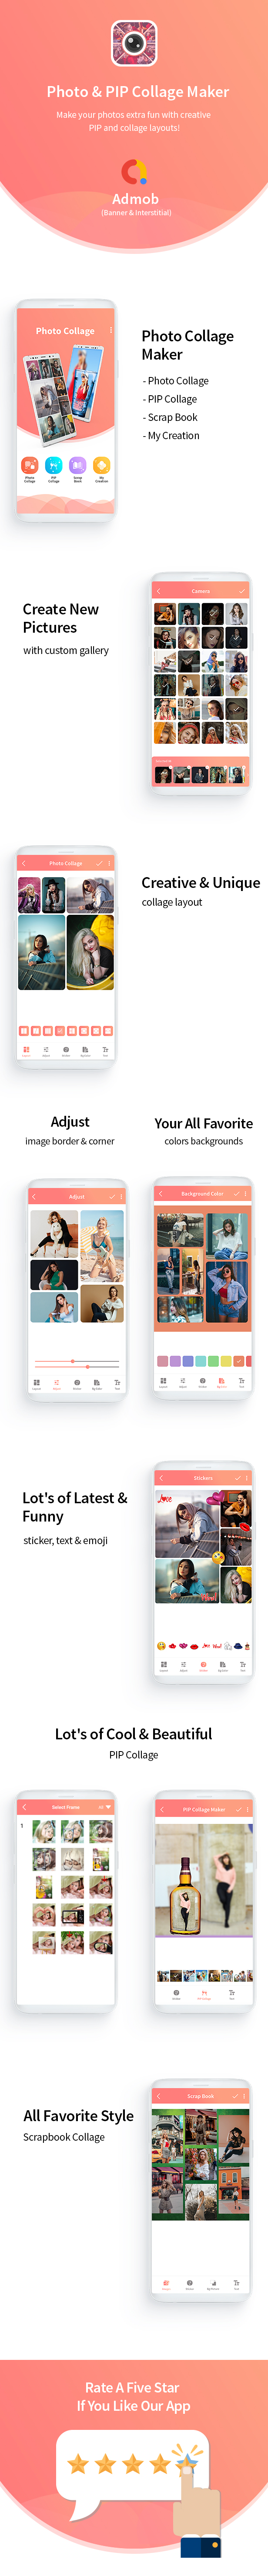 Collage Maker Photo Editor - Android App with Admob - 6